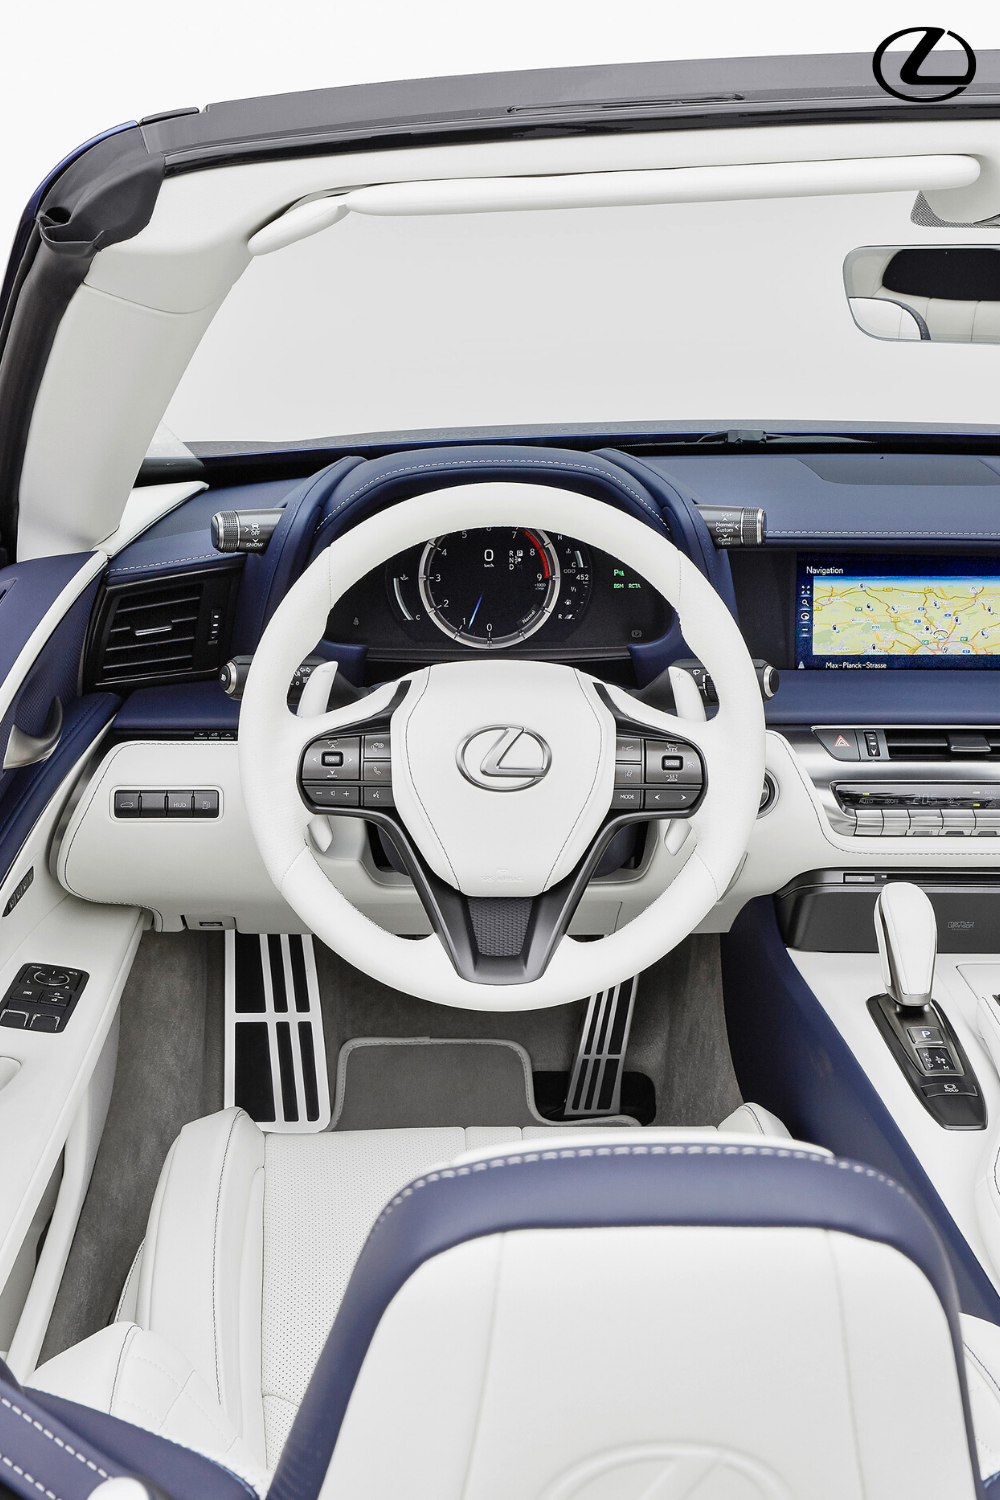 The innovative colour co-ordination in the Lexus LC Convertible creates seamless continuity between the car's exterior and interior. Click to find out more. #Lexus #LexusLC #LCConvertible #LuxuryCars #NewCars #ConvertibleCars #CarDesign #CarBodyDesign